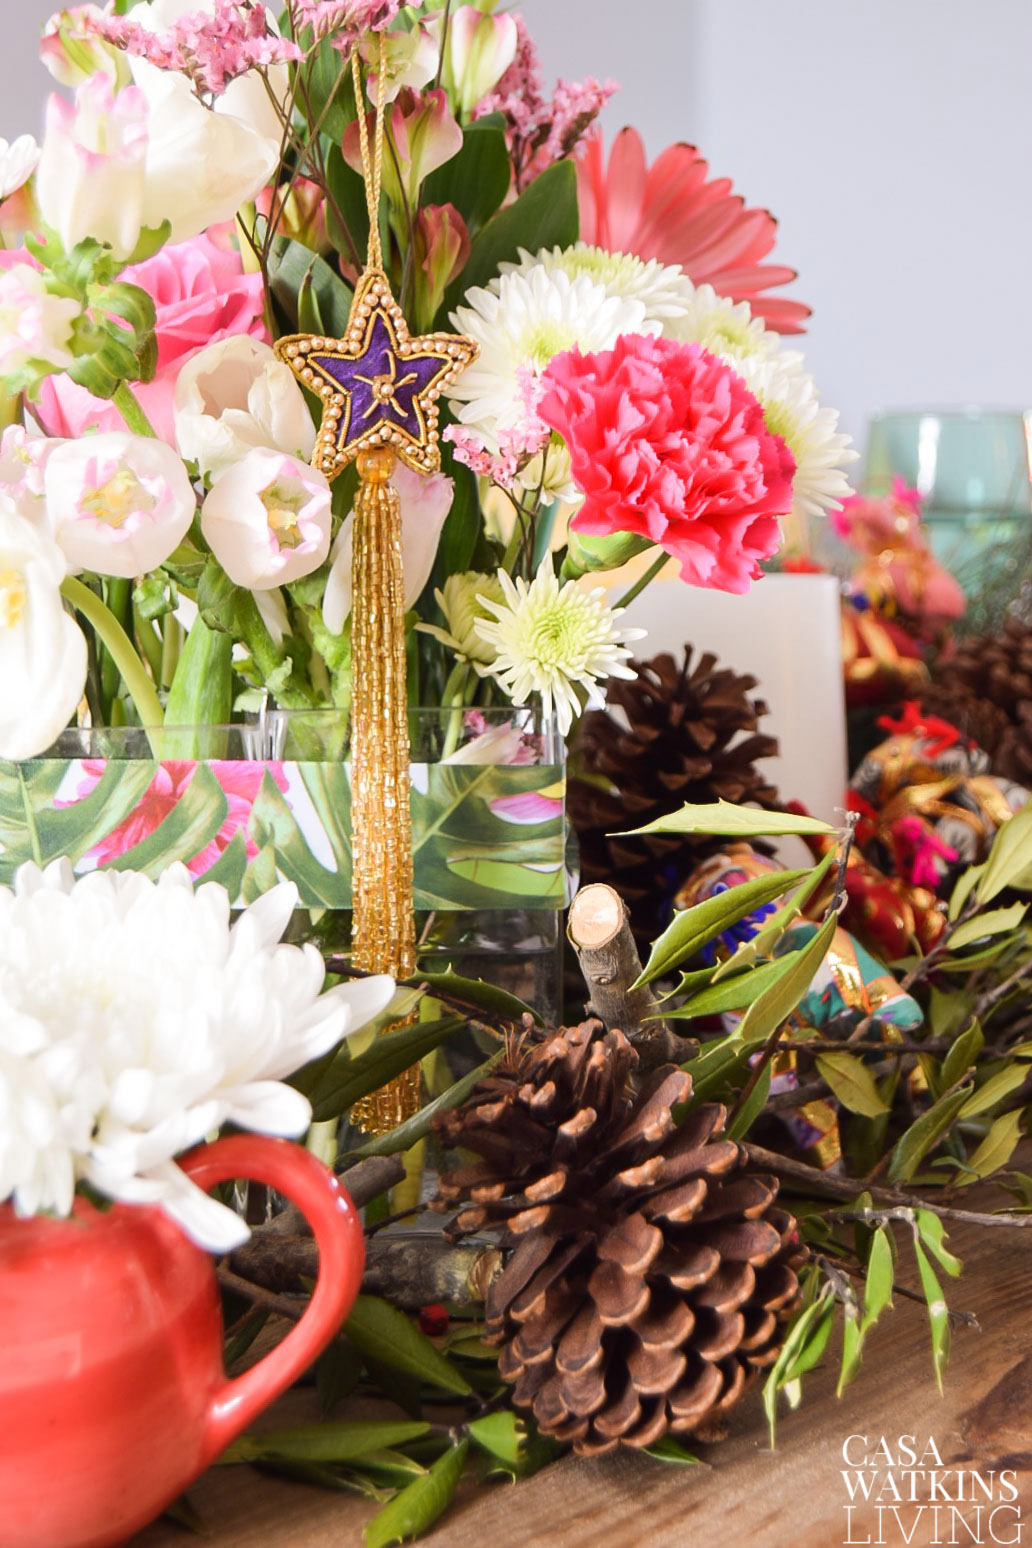 Use hanging ornaments on floral centerpiece for holiday decor